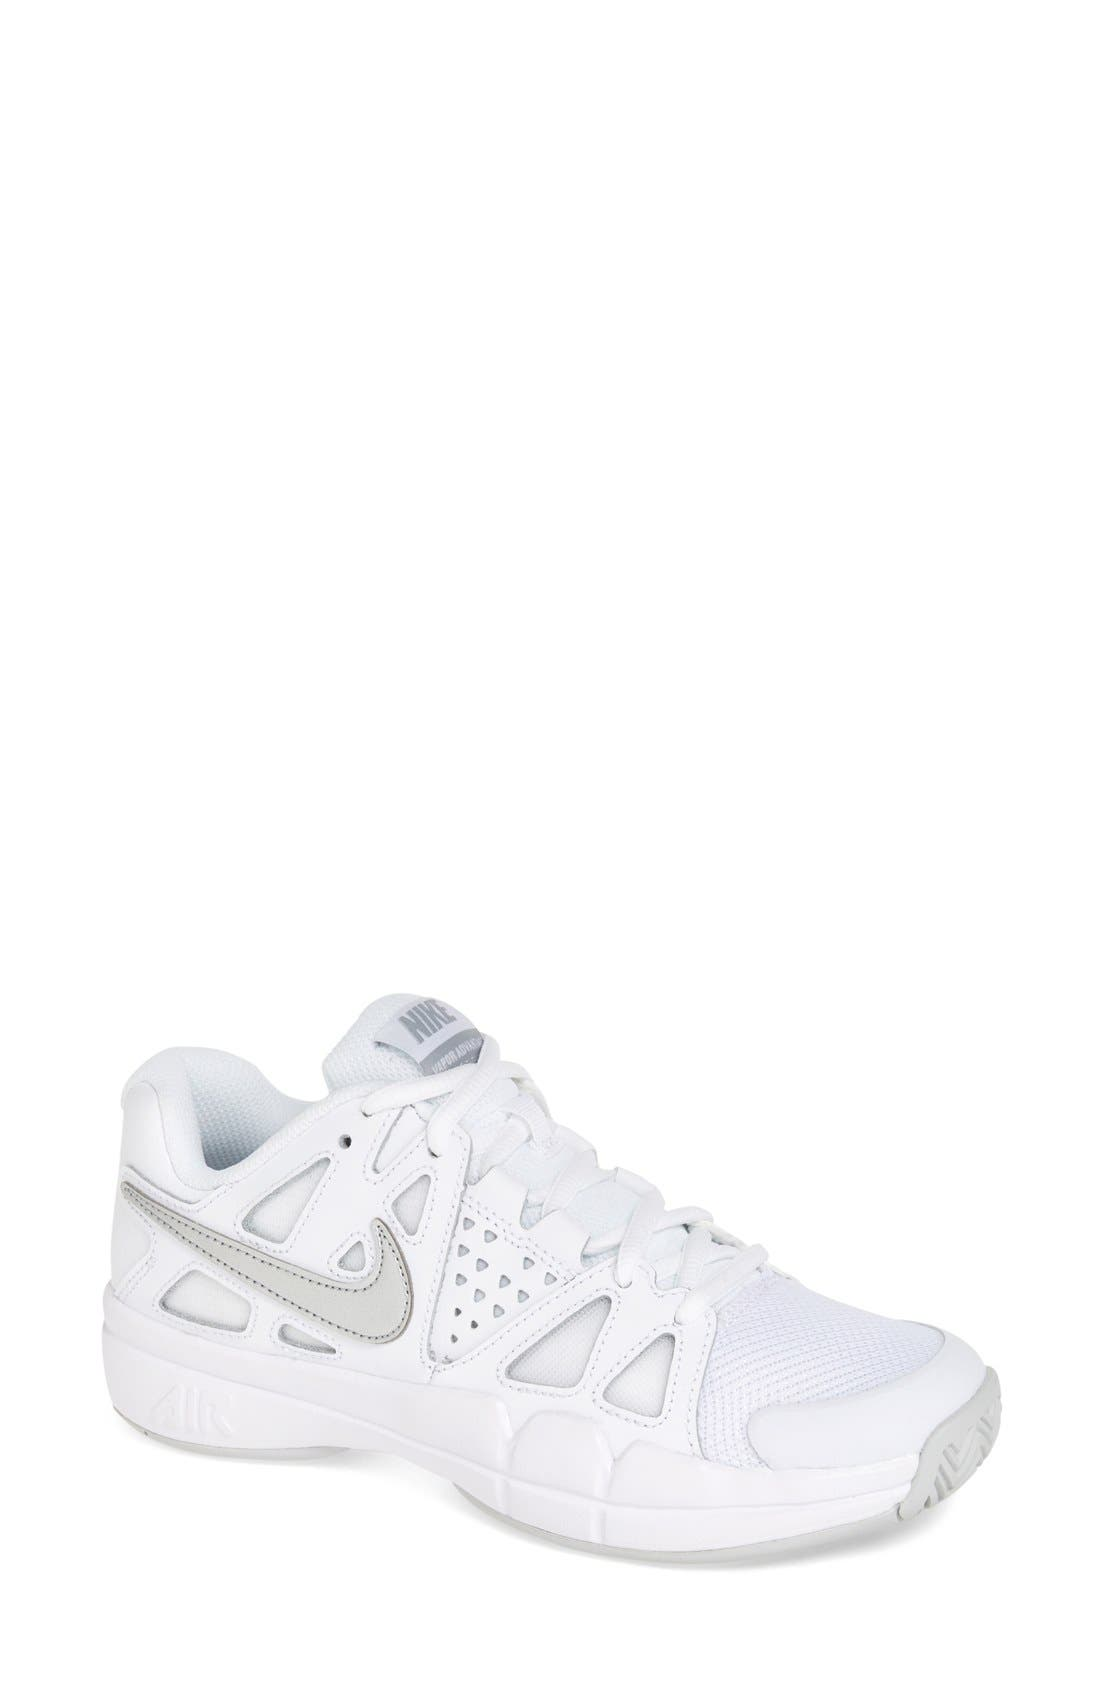 Alternate Image 1 Selected - Nike 'Air Vapor Advantage' Tennis Shoe (Women)